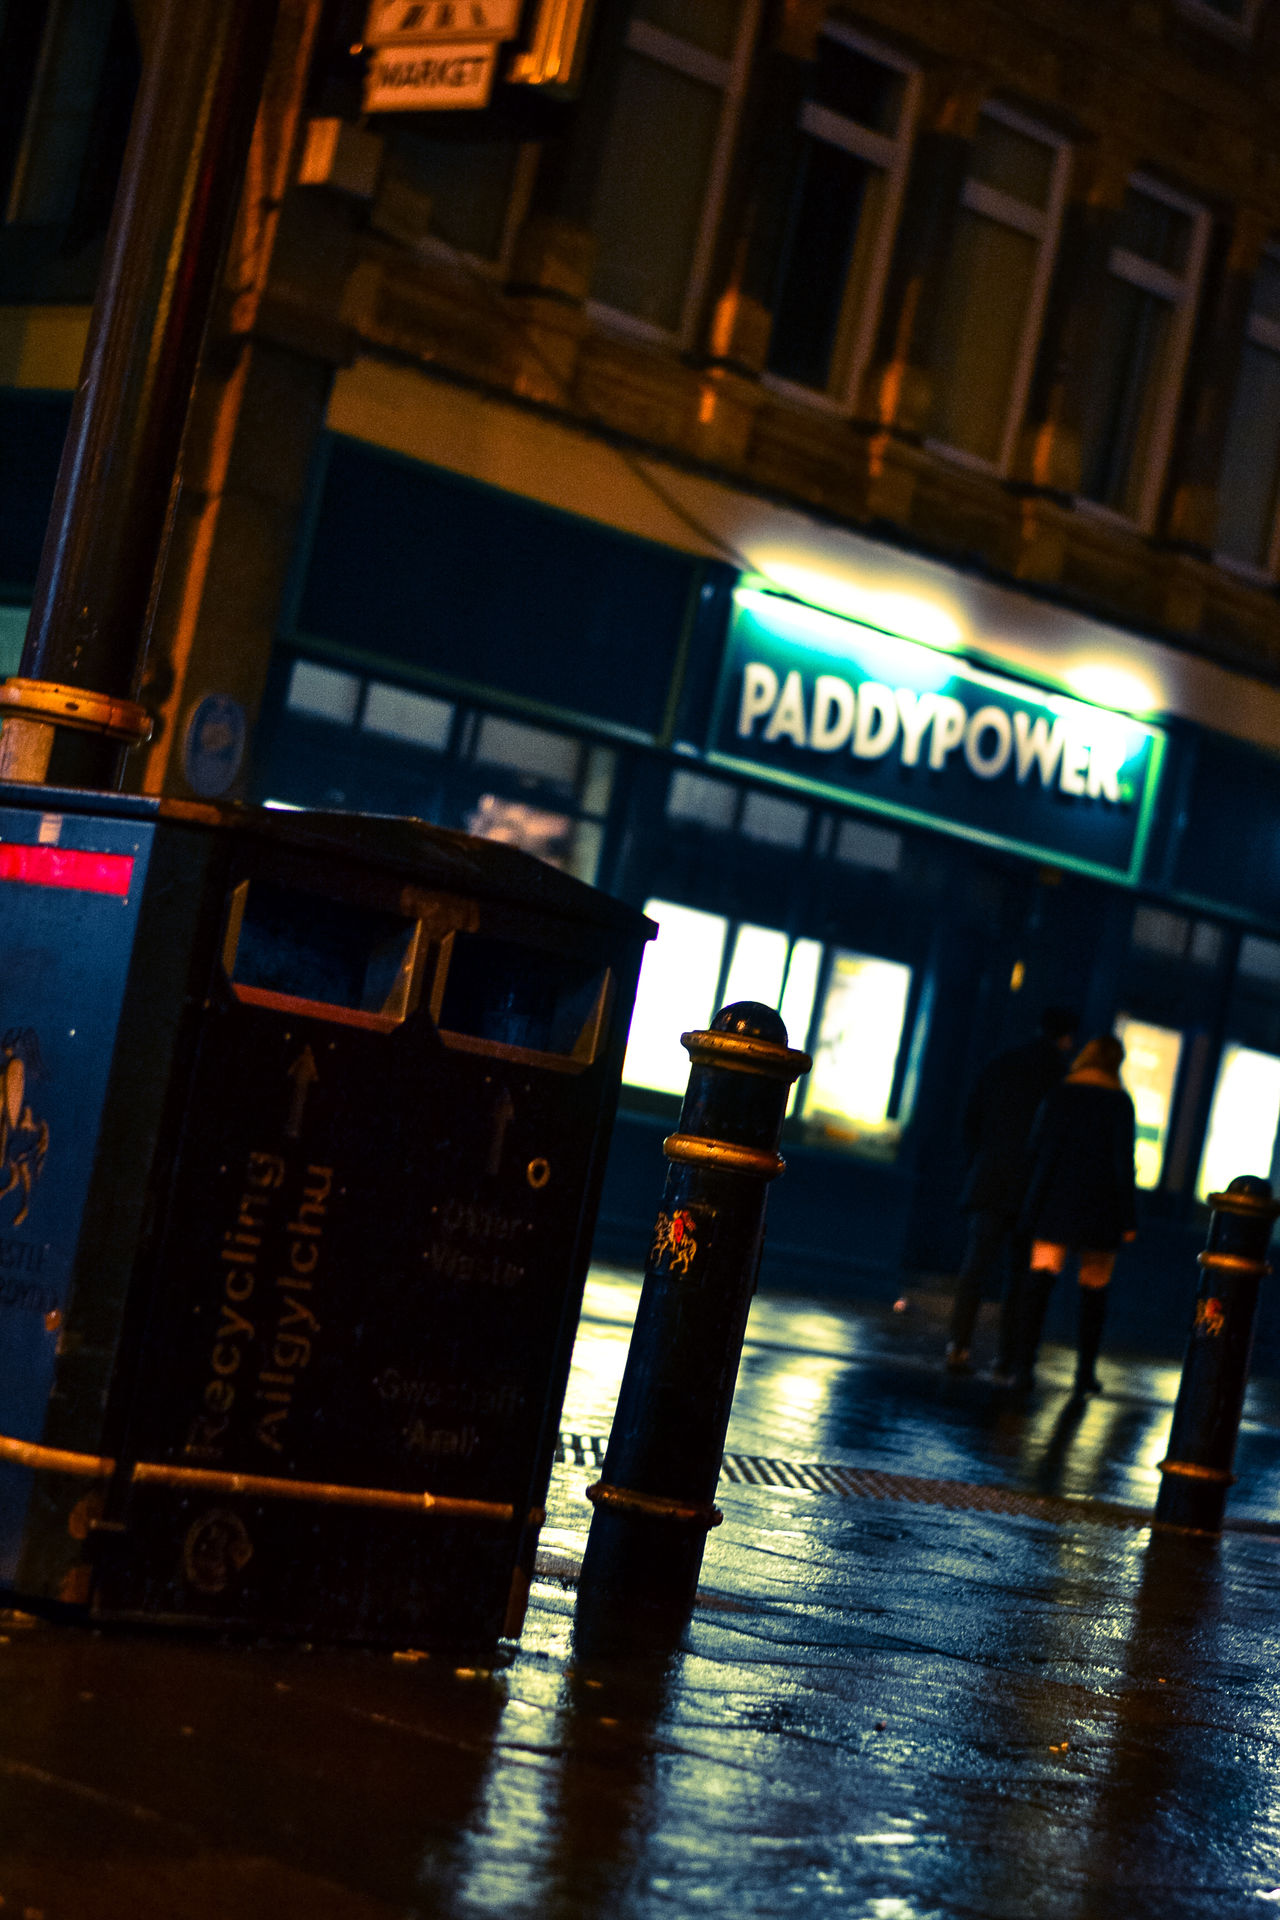 Travel Night Communication City Text Indoors  No People Architecture Road Sign Exit Sign Streetlife Cardiff Paddypower Nightphotography Street St Mary's Street Wales Wet Reflections